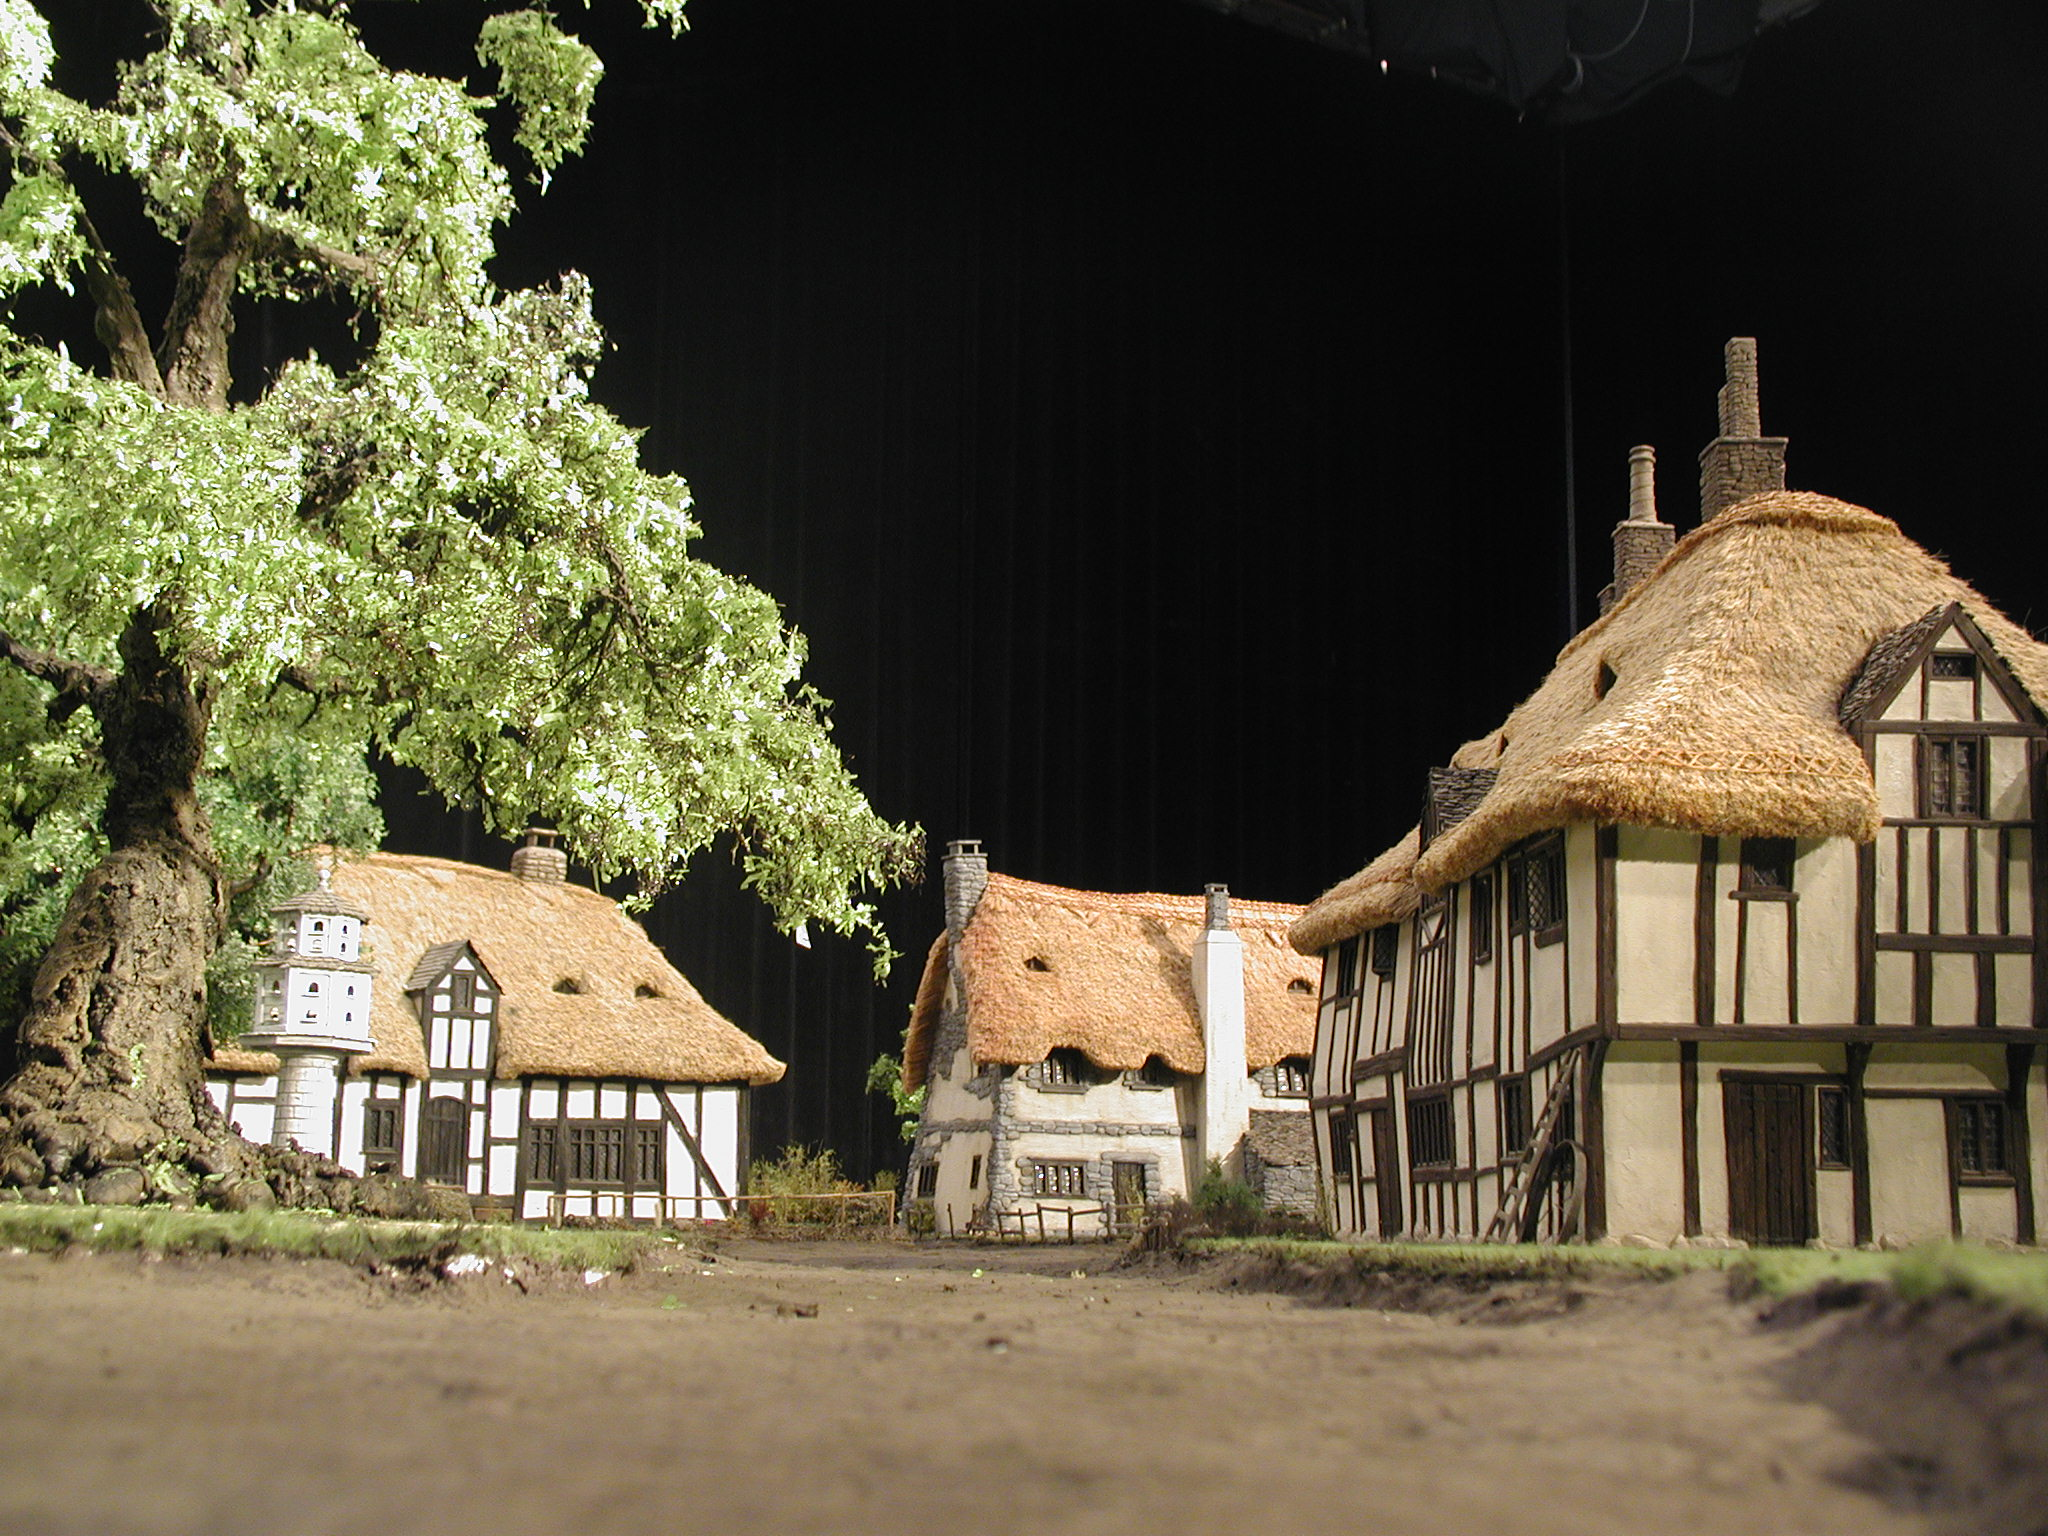 Miniature model village set